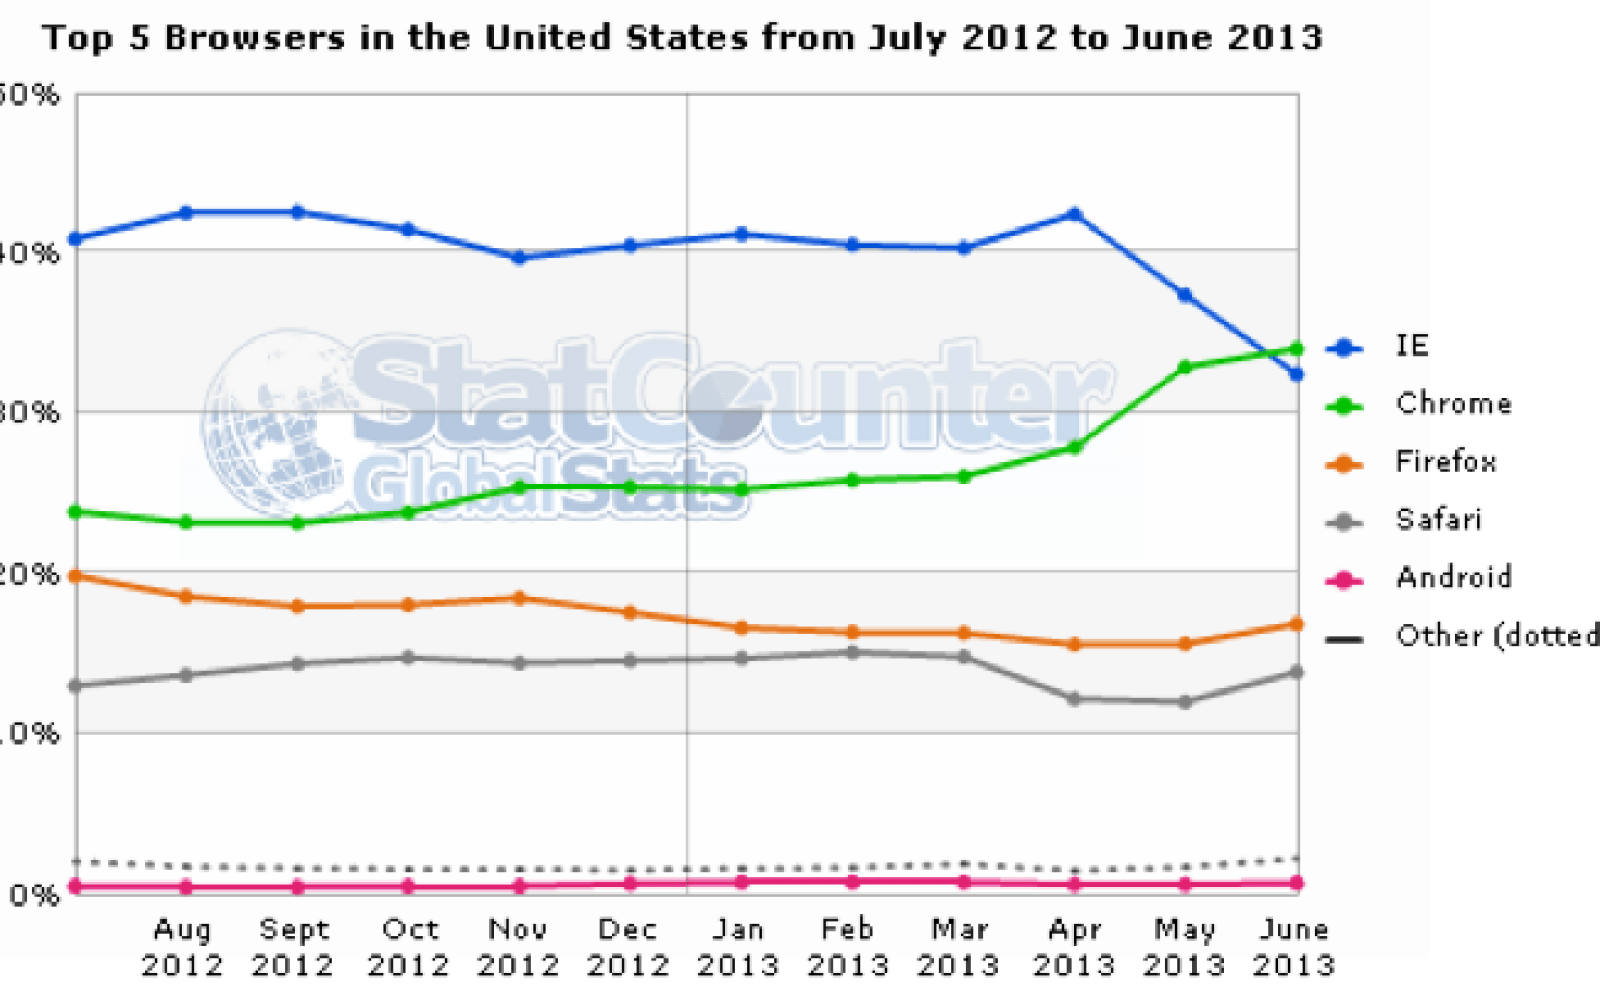 chrome overtakes internet explorer as the most popular browser in